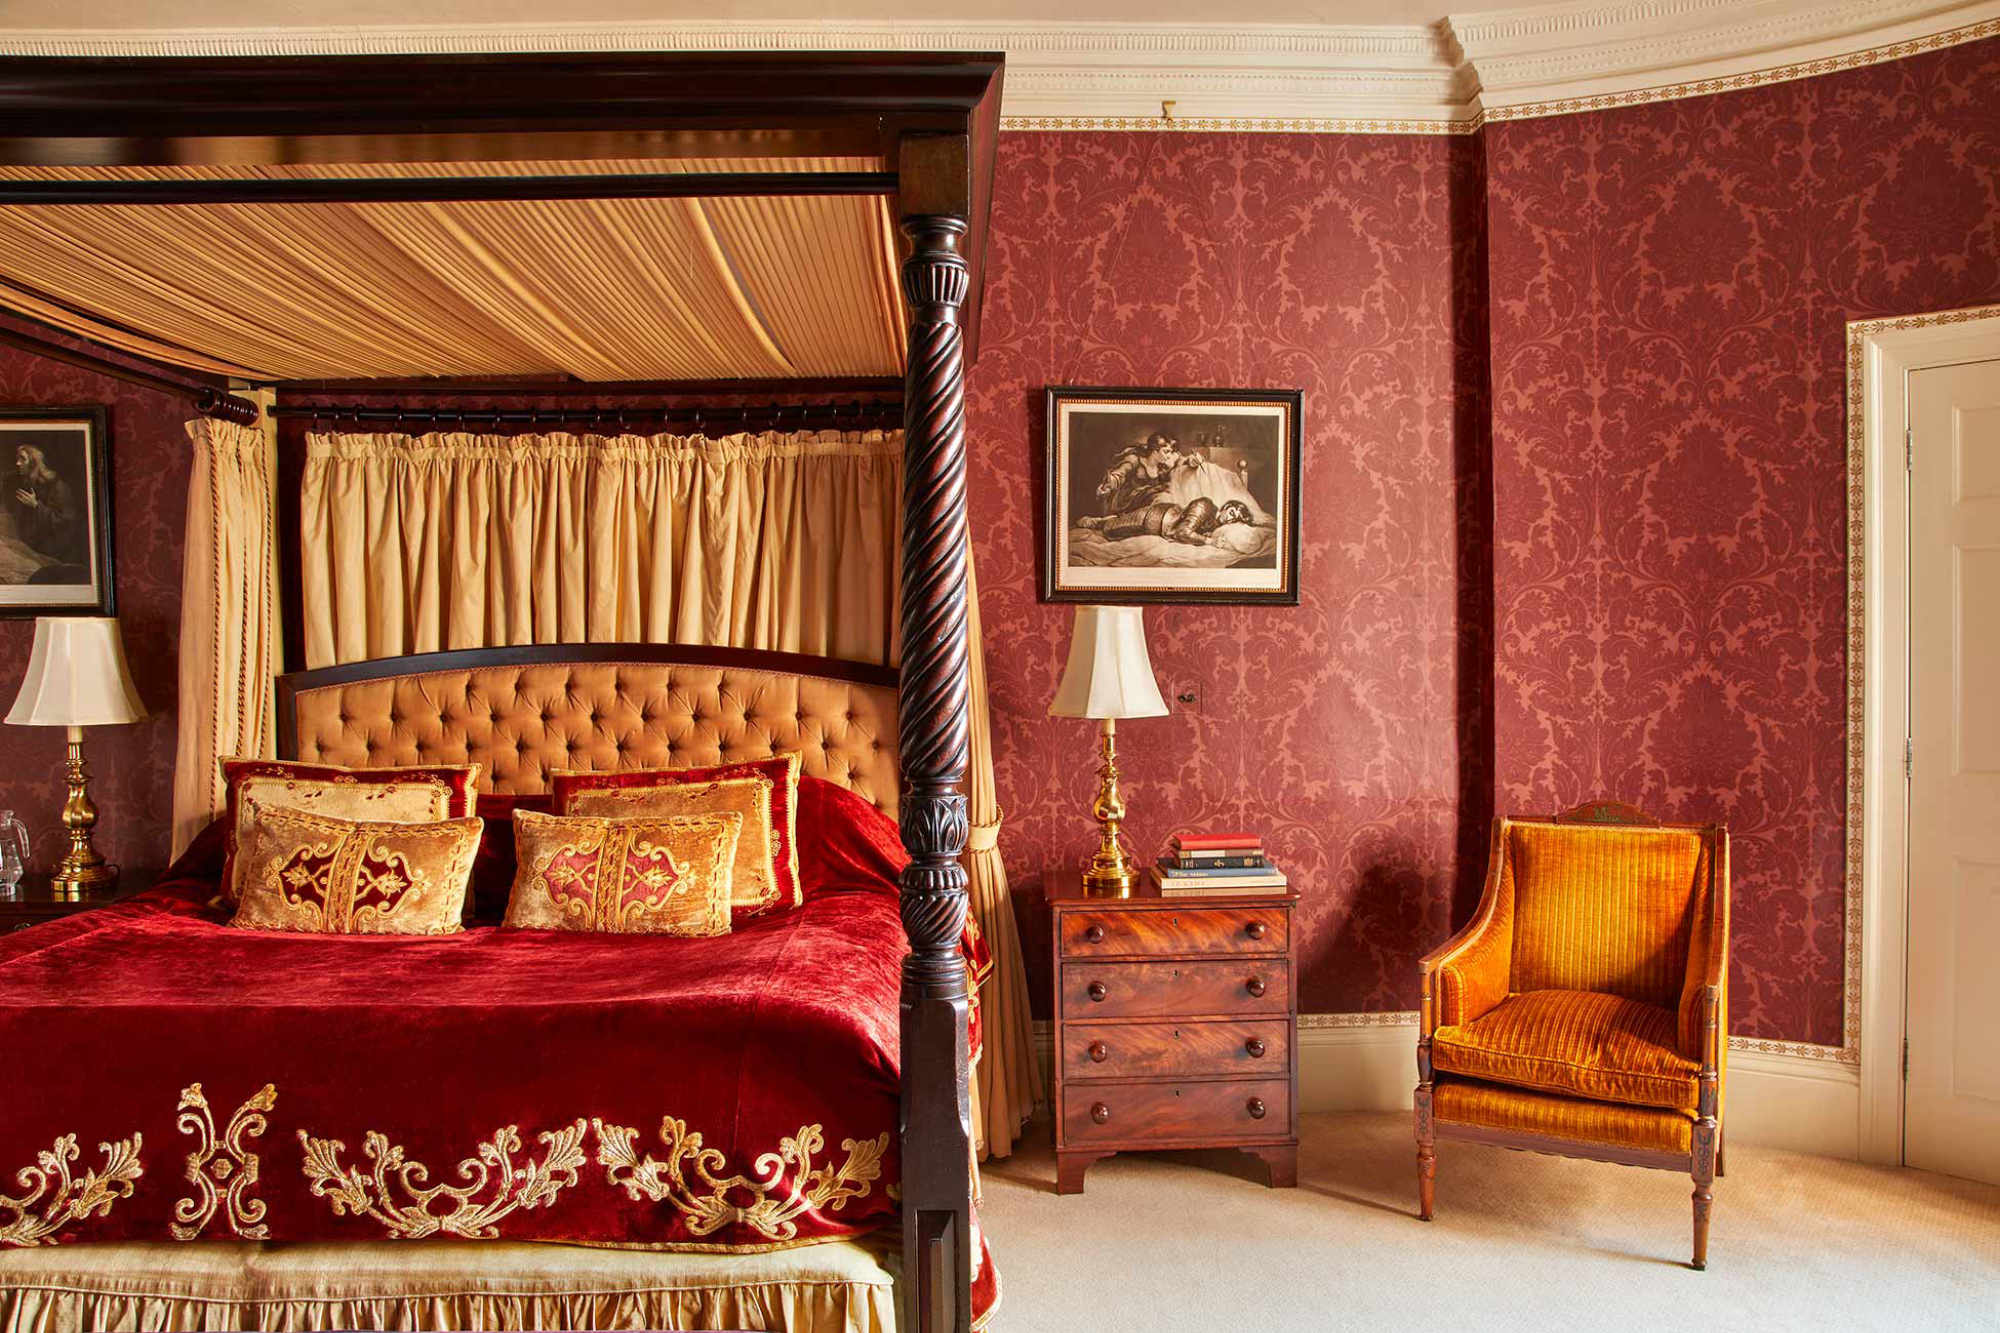 The ornate Drury Lowe Feature Room is one of the tempting bedrooms at Home House